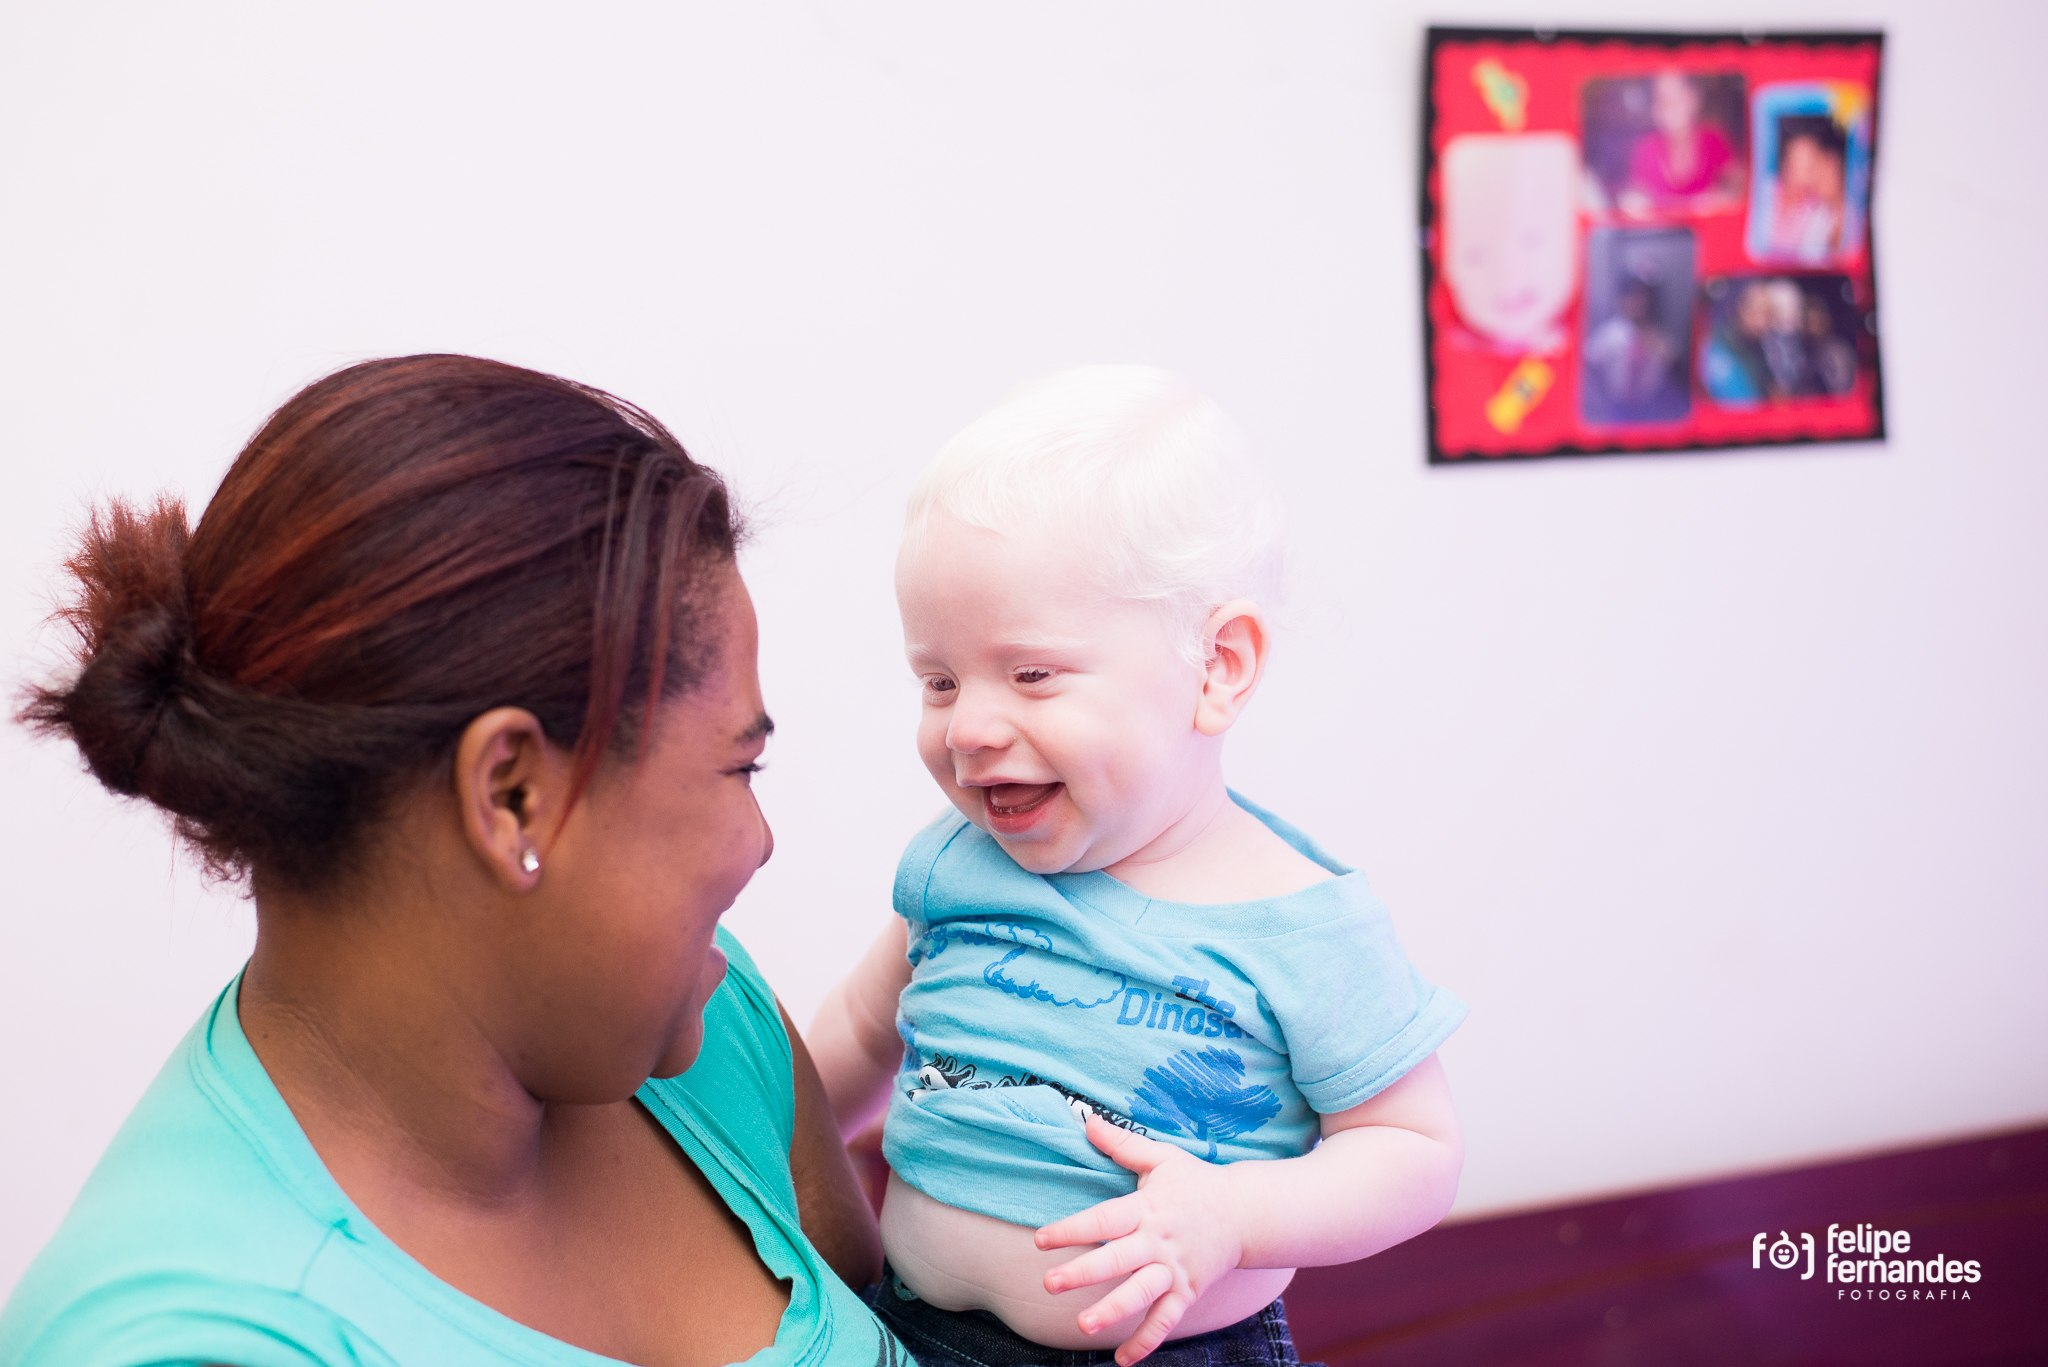 Image shows a young black woman holding and smiling at a delighted 9-month old albino baby.